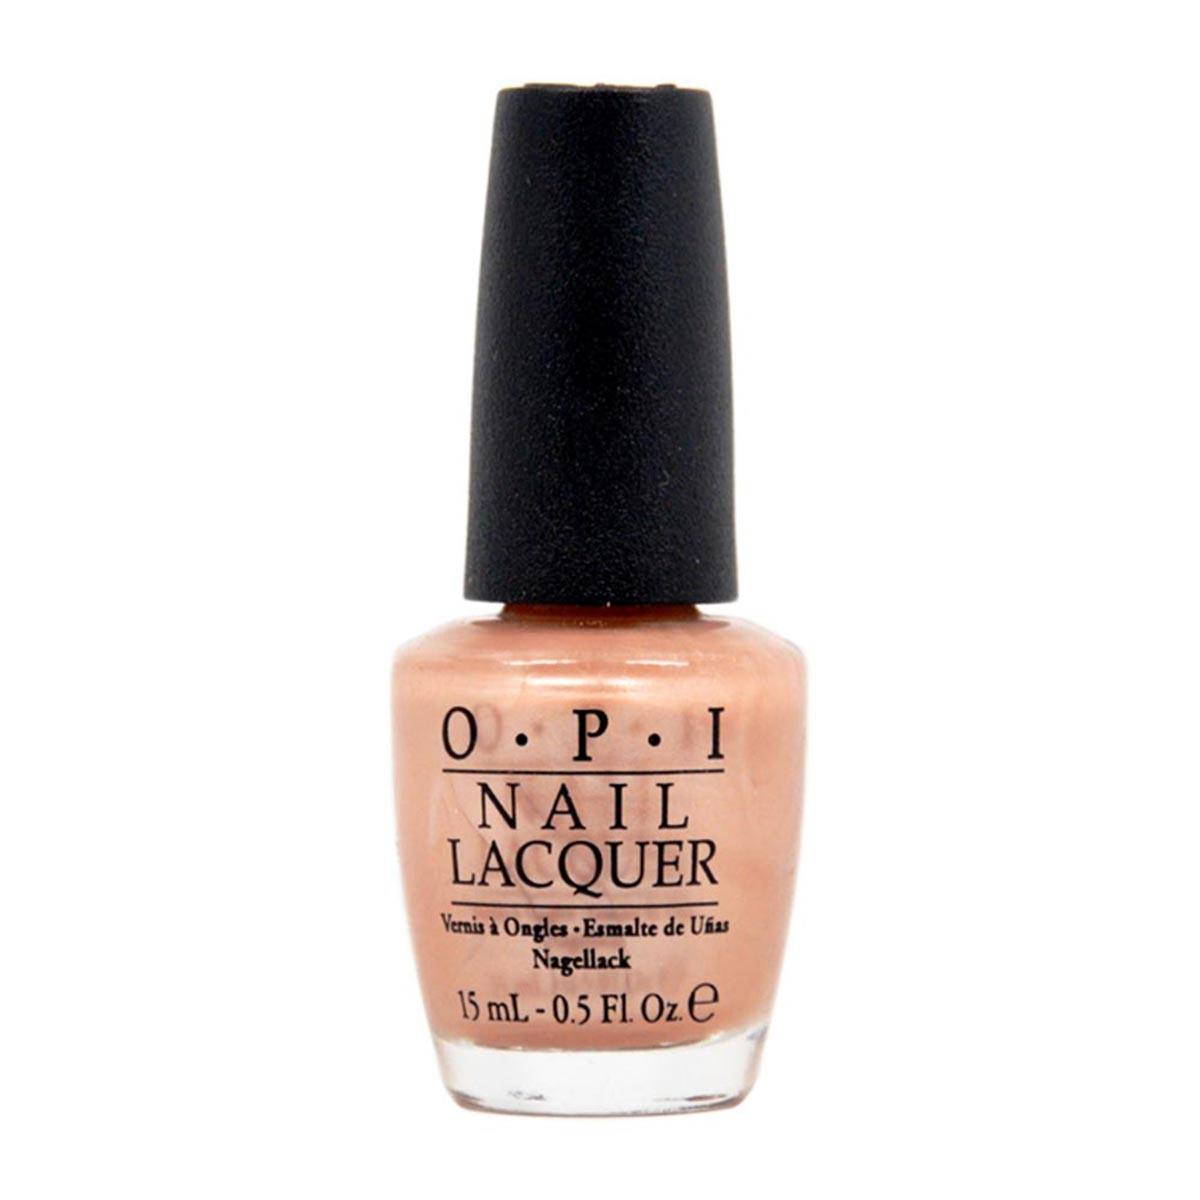 Opi fragrances Nail Lacquer Nlr58 Cosmonot Tonight Honey!